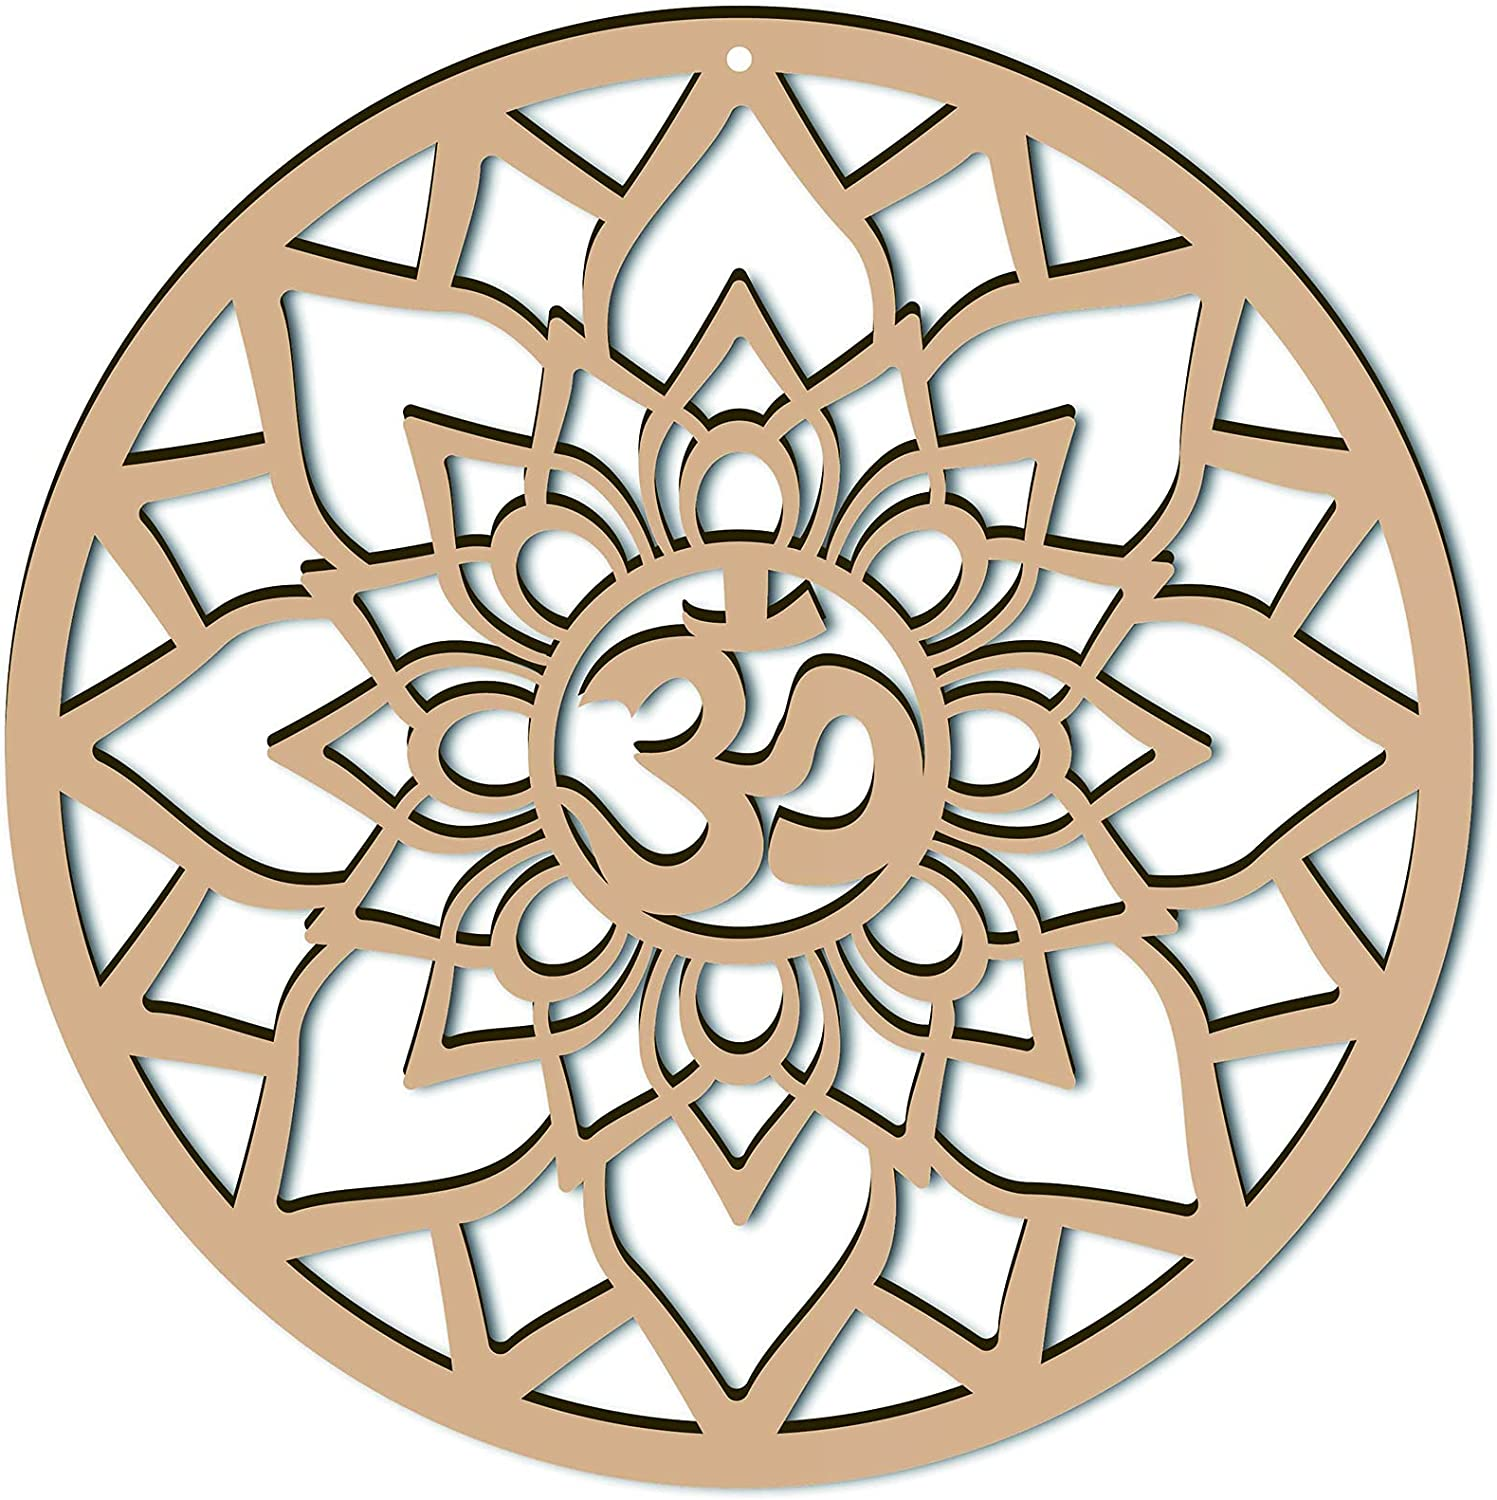 CREATCABIN 12inch Om Lotus Wall Decor Wooden Wall Art Crystal Grid Sacred Geometry Laser Cut Wall Sculpture Hanging Decor Spiritual Symbol Round for Housewarming Home Office Yoga Studio Decoration